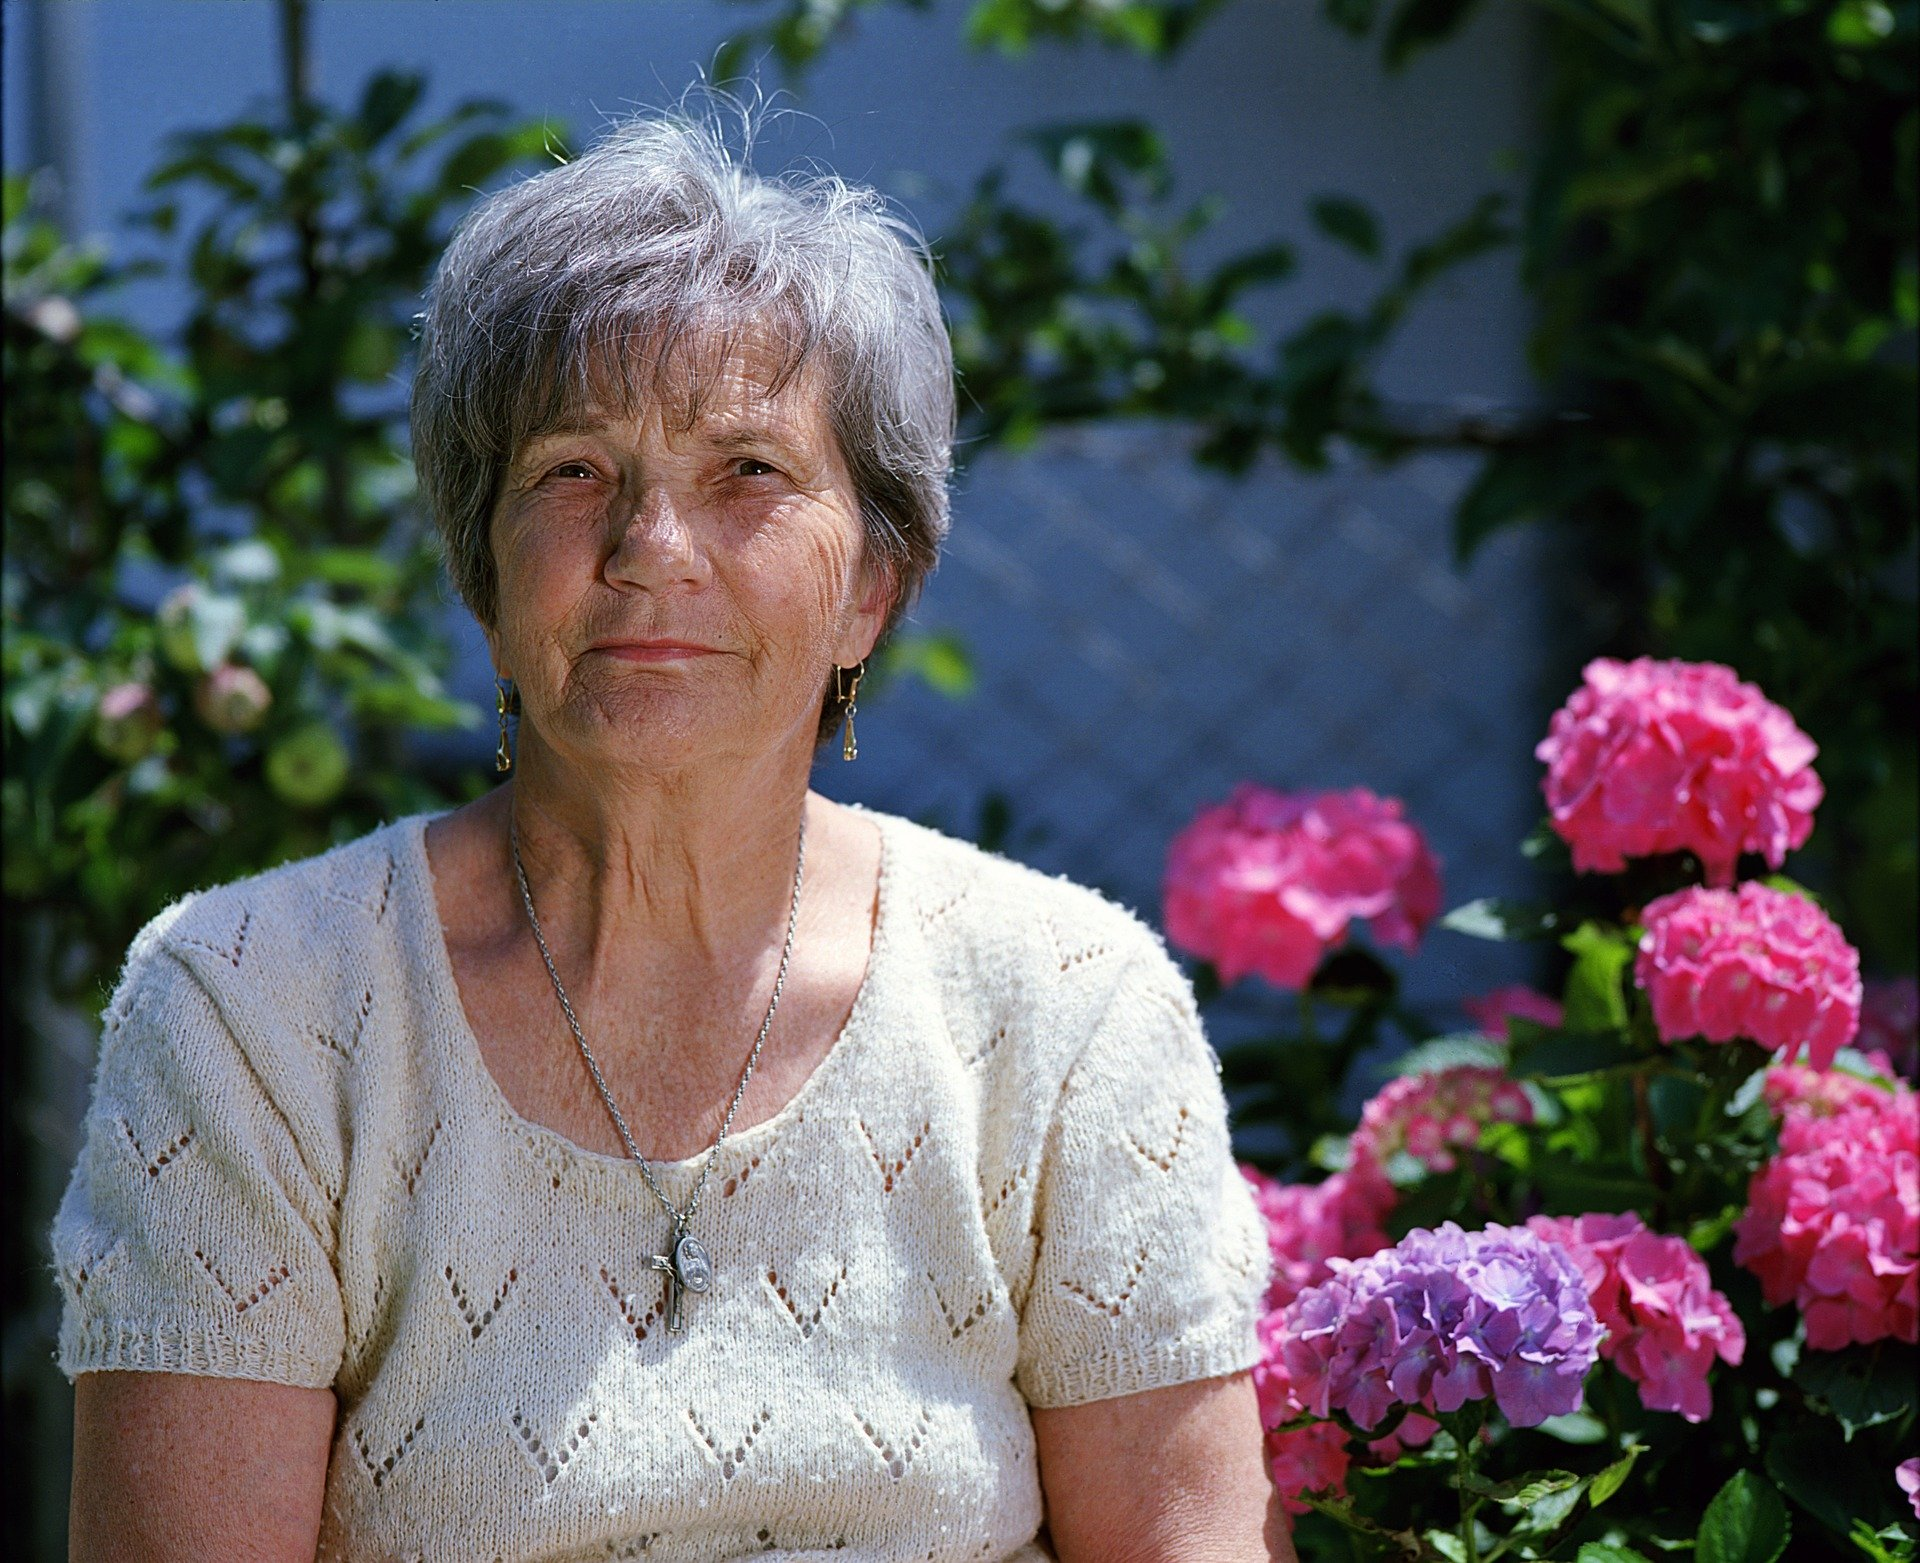 Elderly woman looking at camera with pink carnations in the background